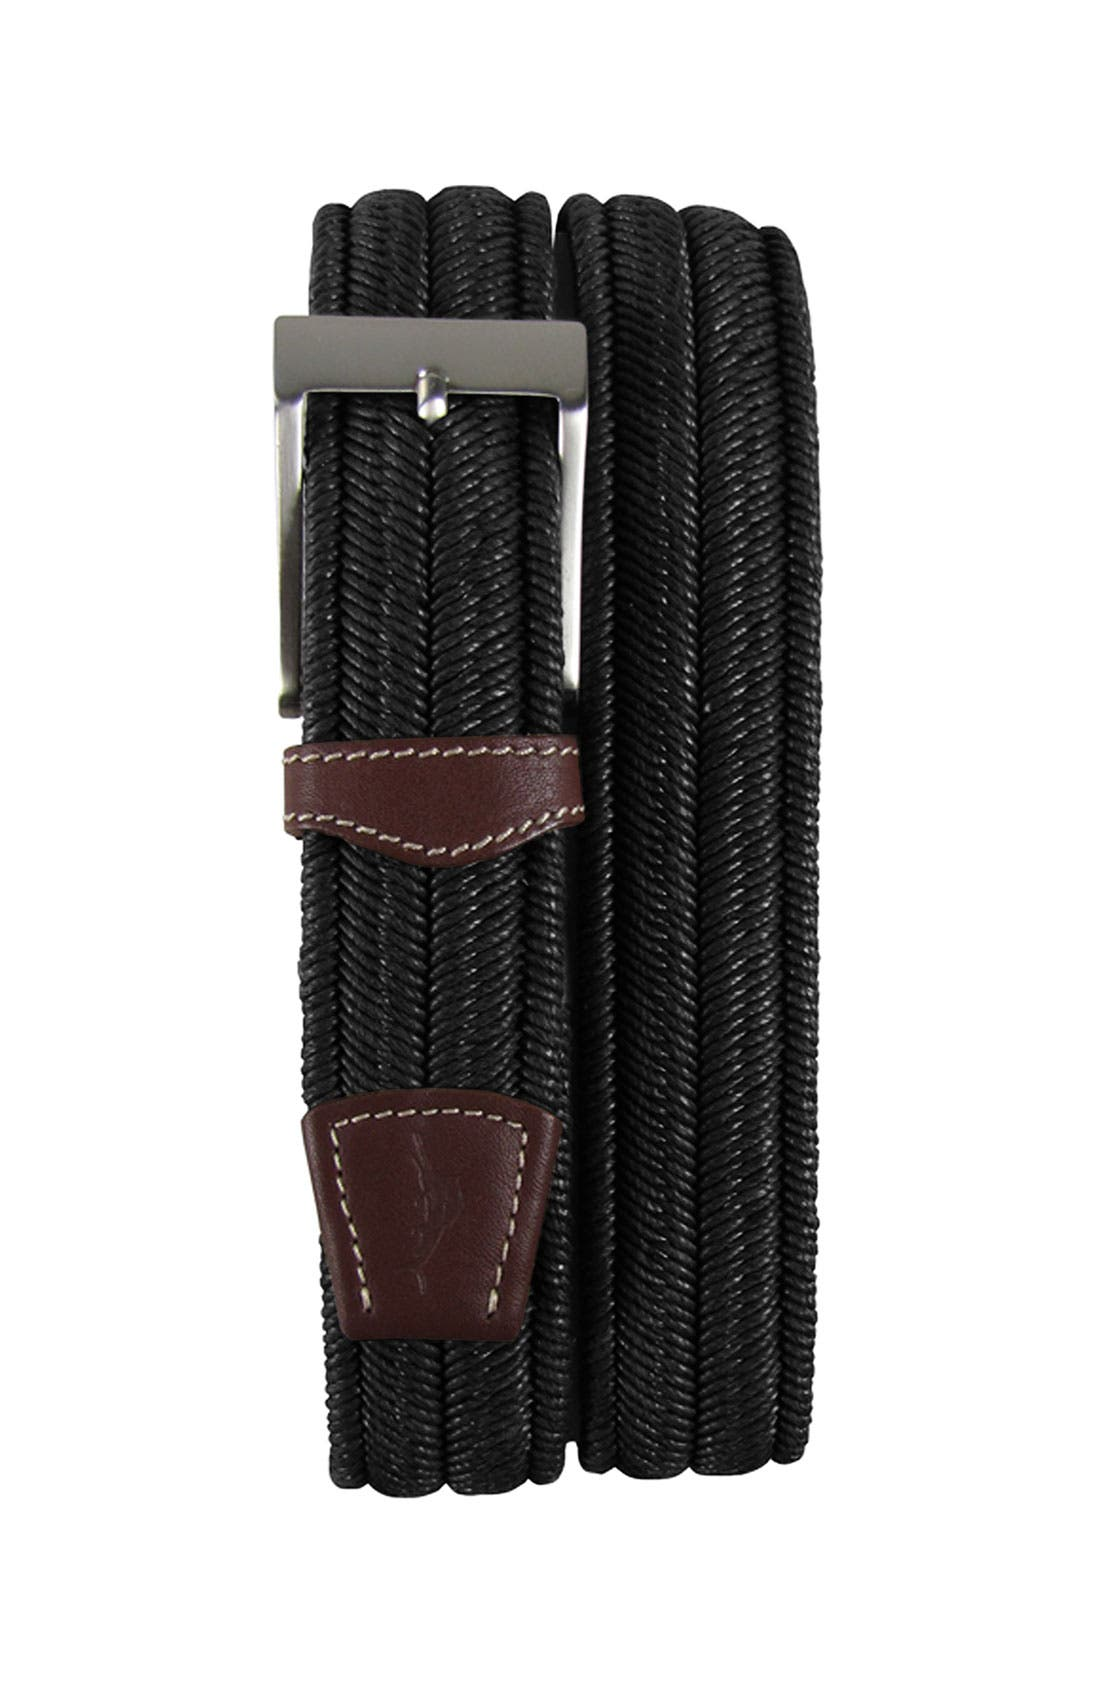 Alternate Image 1 Selected - Tommy Bahama 'Castaway' Woven Cotton Belt